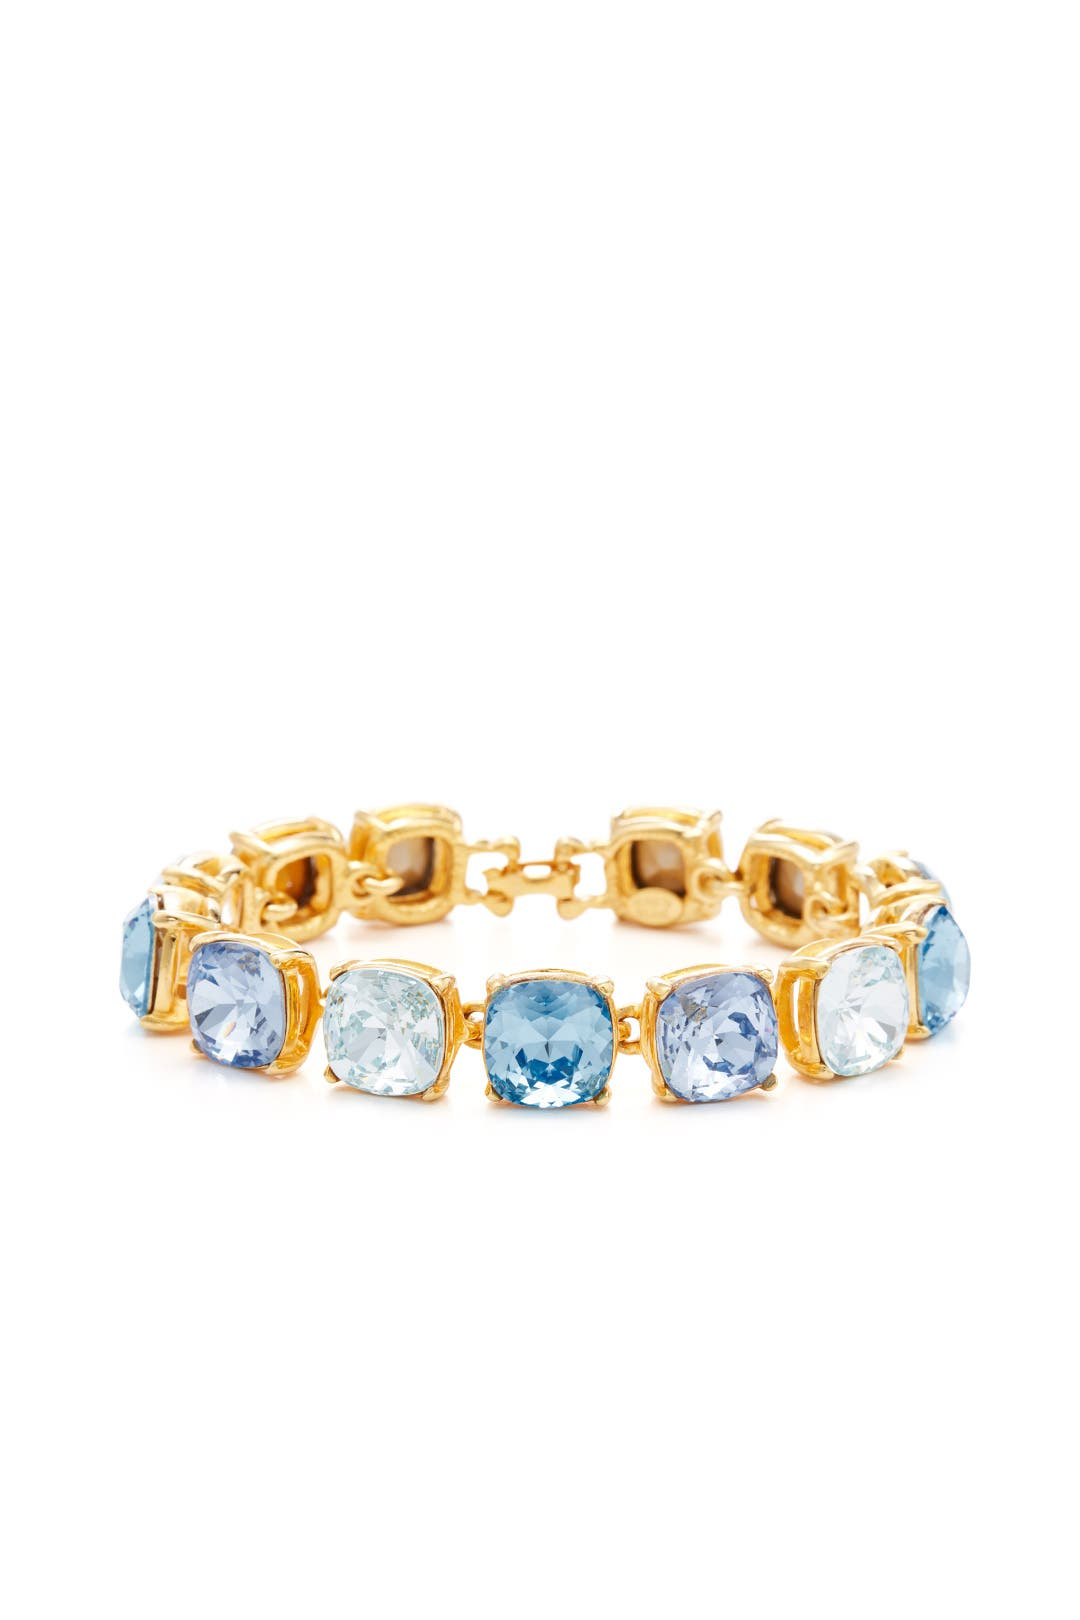 Shades of Blue Crystal Bracelet by Kenneth Jay Lane